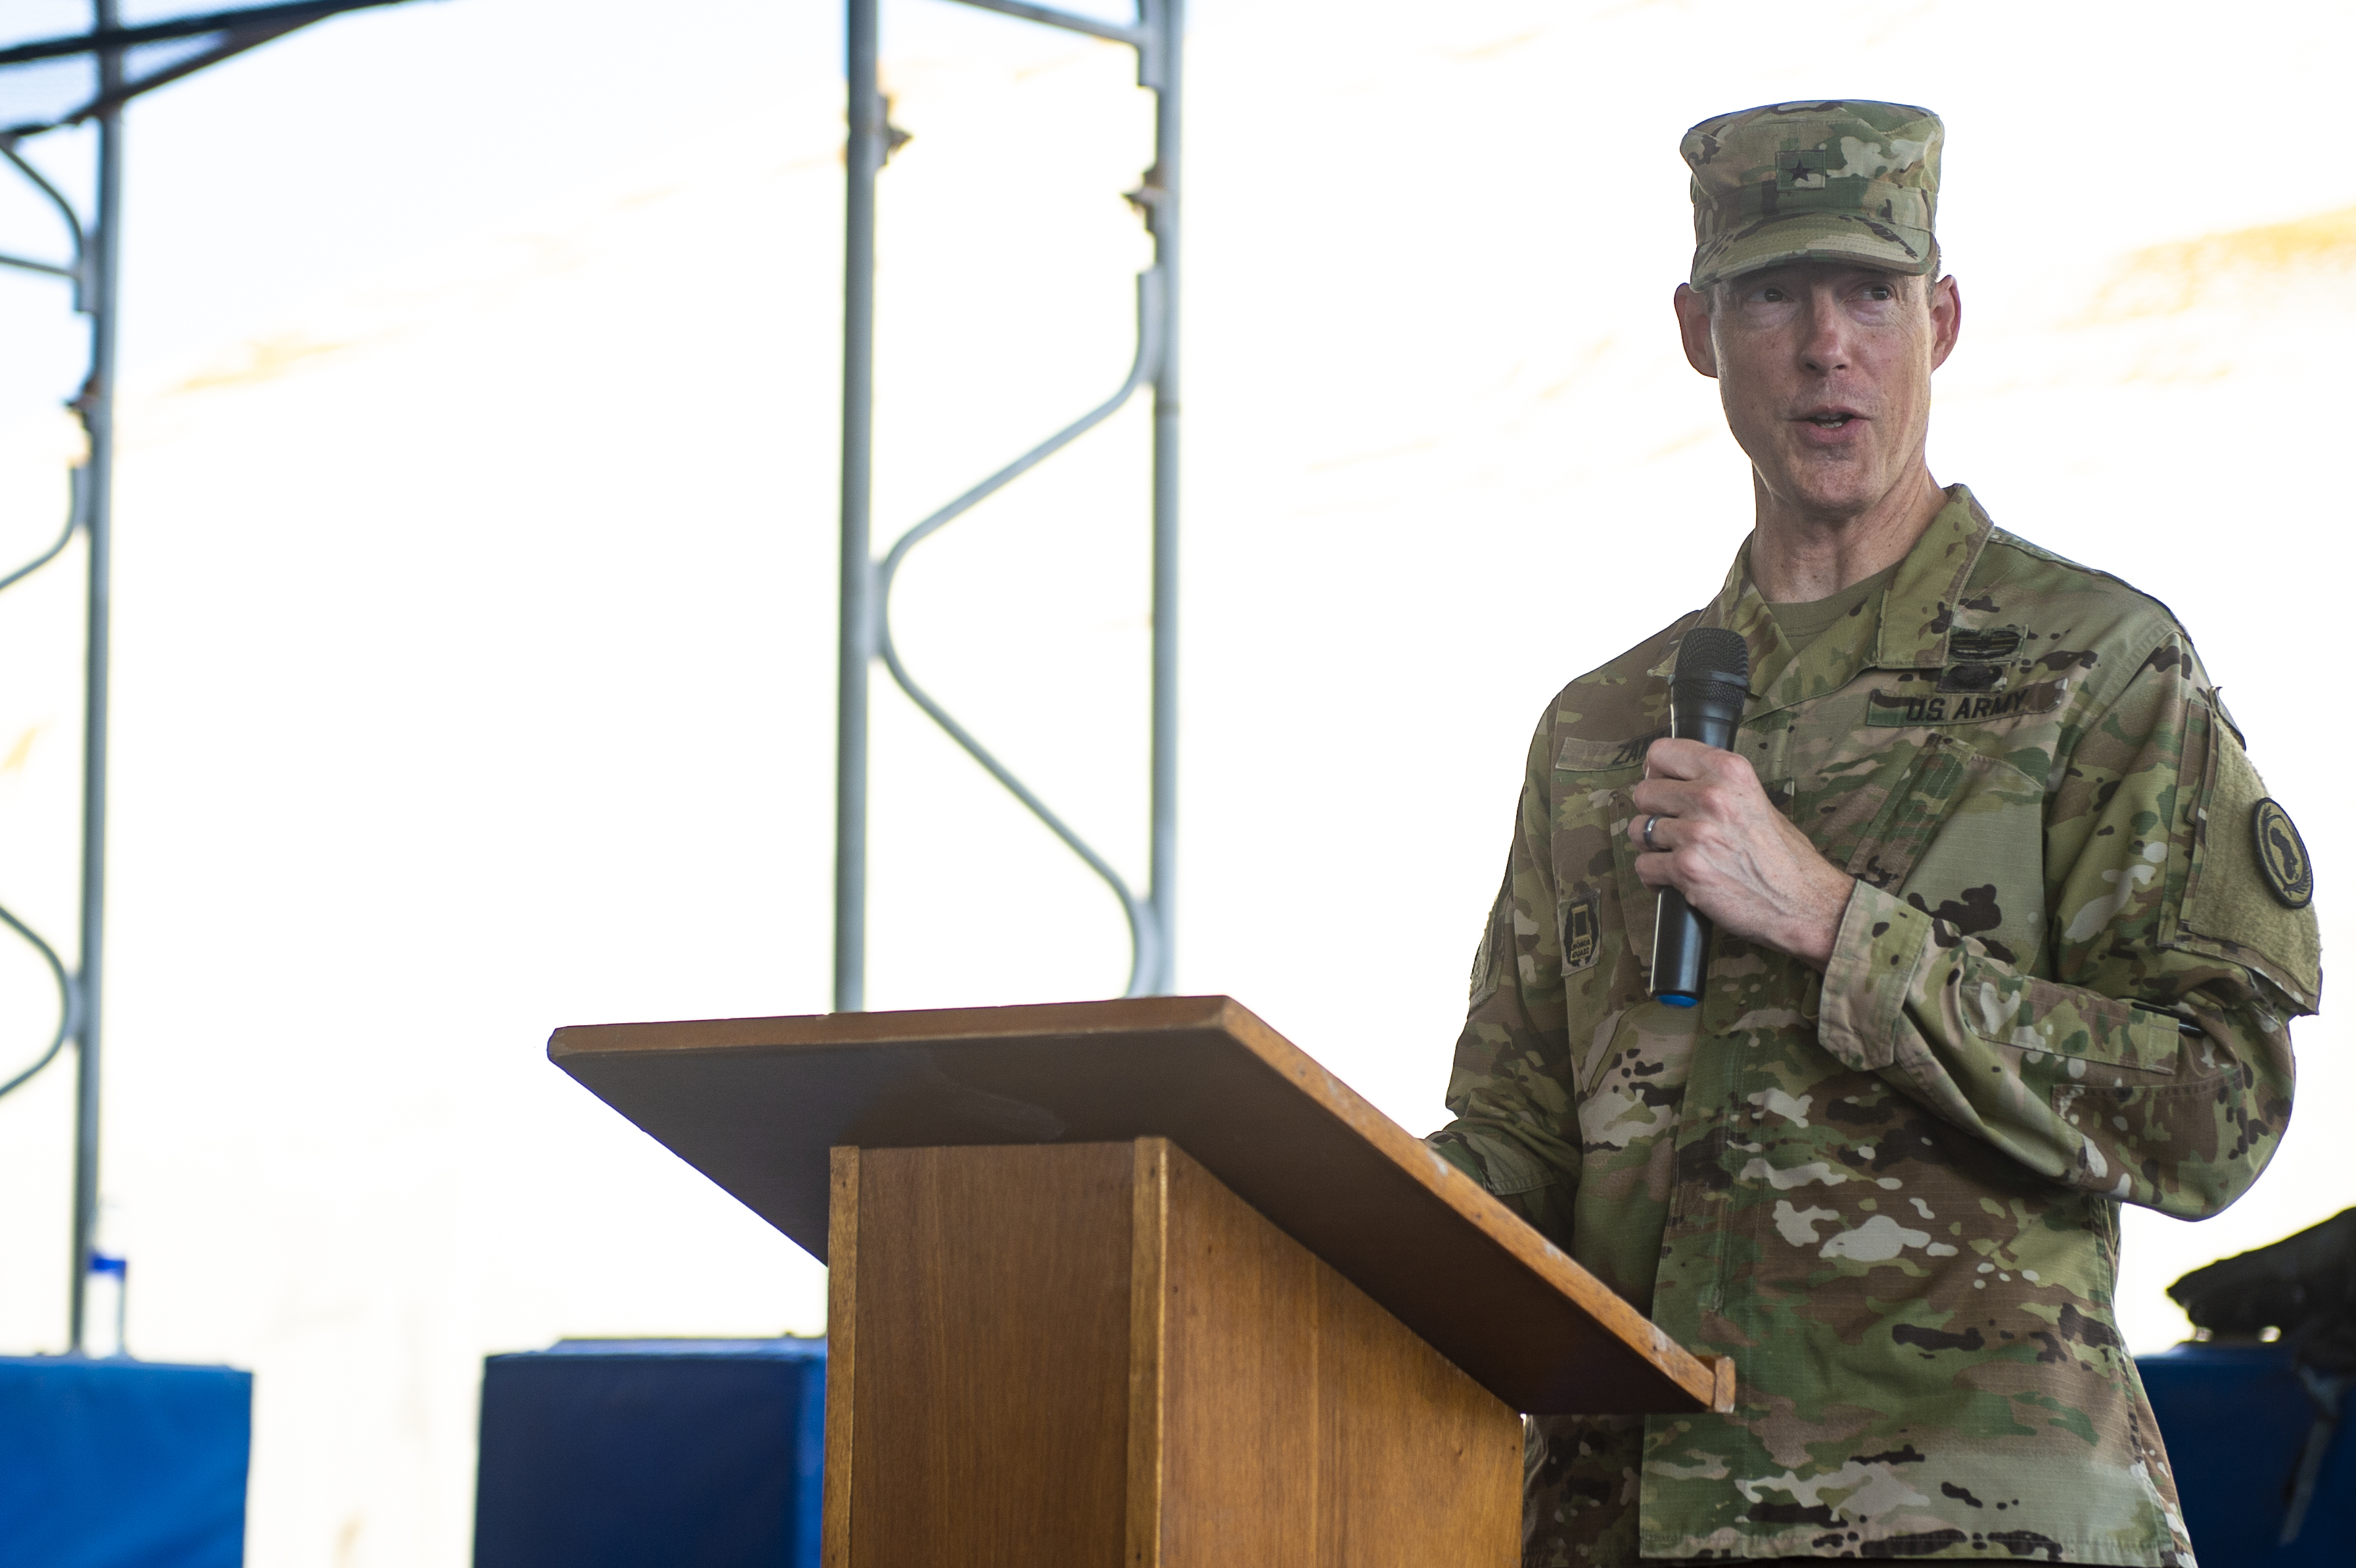 U.S. Army Brig. Gen. William Zana, deputy commanding general Combined Joint Task Force Horn of Africa, speaks during the Civil Affairs transfer of authority ceremony on Camp Lemonnier, Djibouti, Oct. 13, 2018. The 404th CA Battalion transferred its authority to the 403rd CA Battalion, who will now continue the mission throughout the Horn of Africa. (U.S. Air Force photo by Senior Airman Scott Jackson)